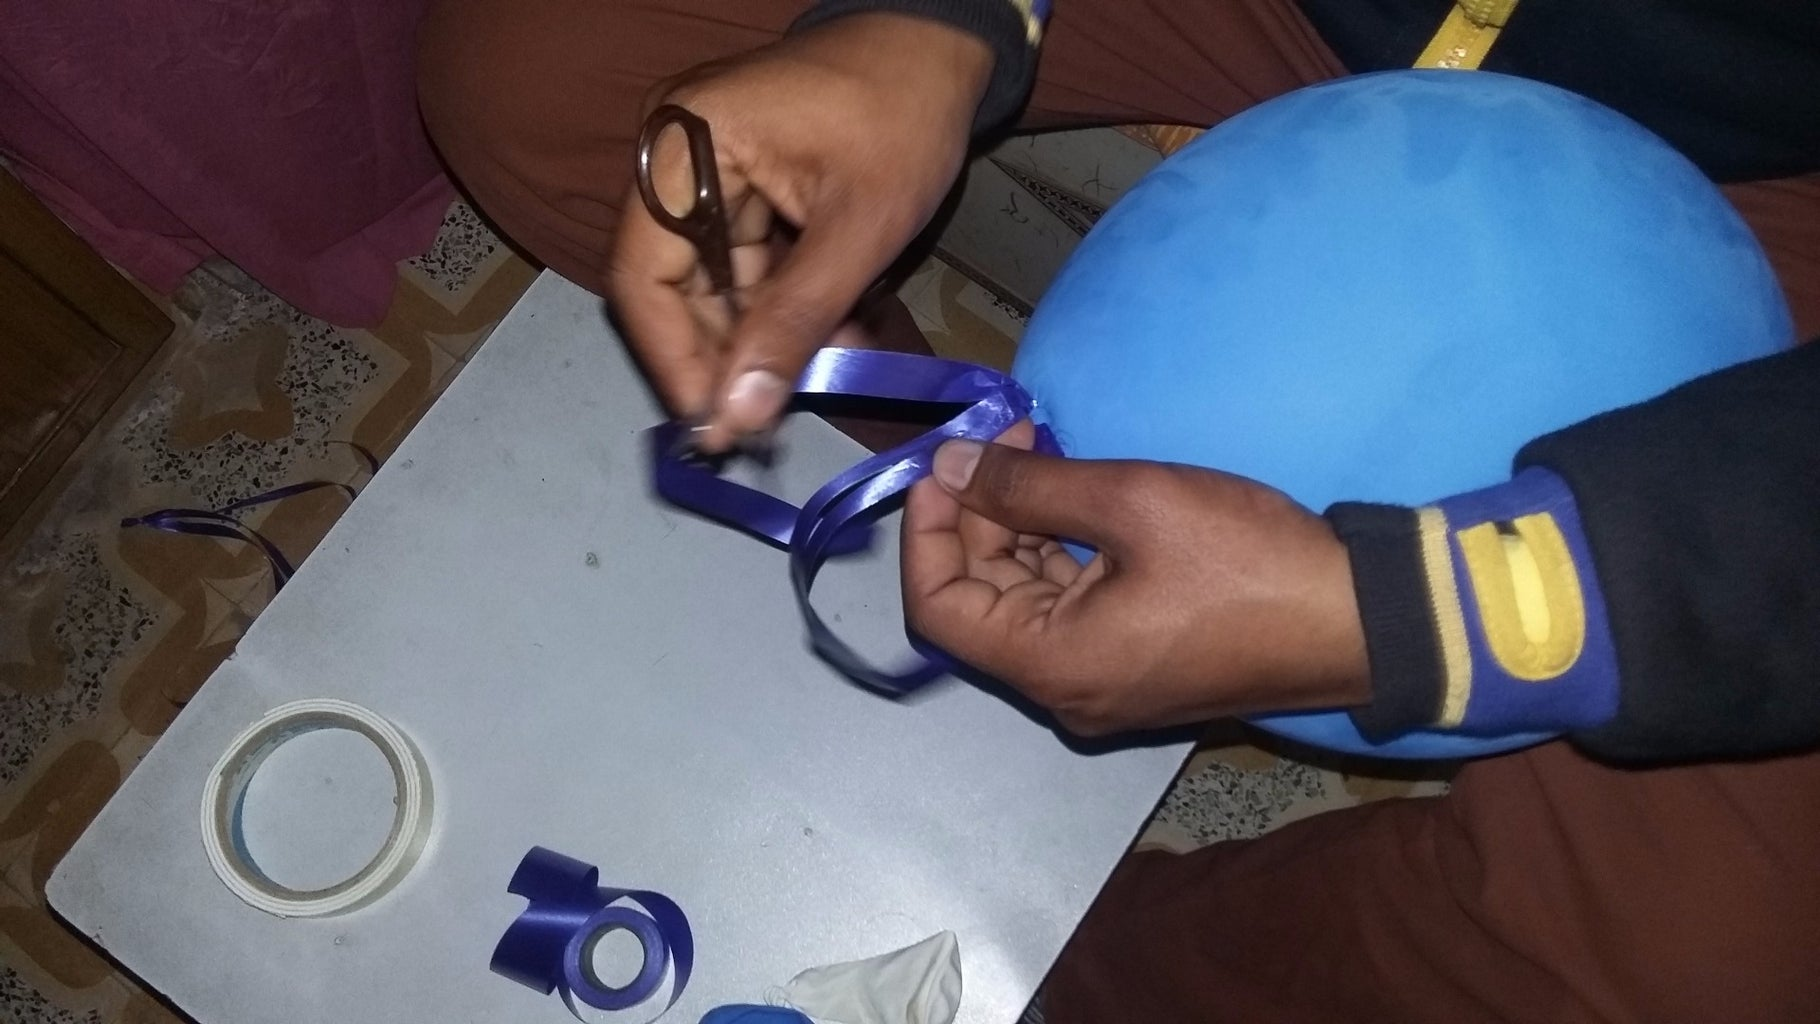 Creating Tail of Balloon